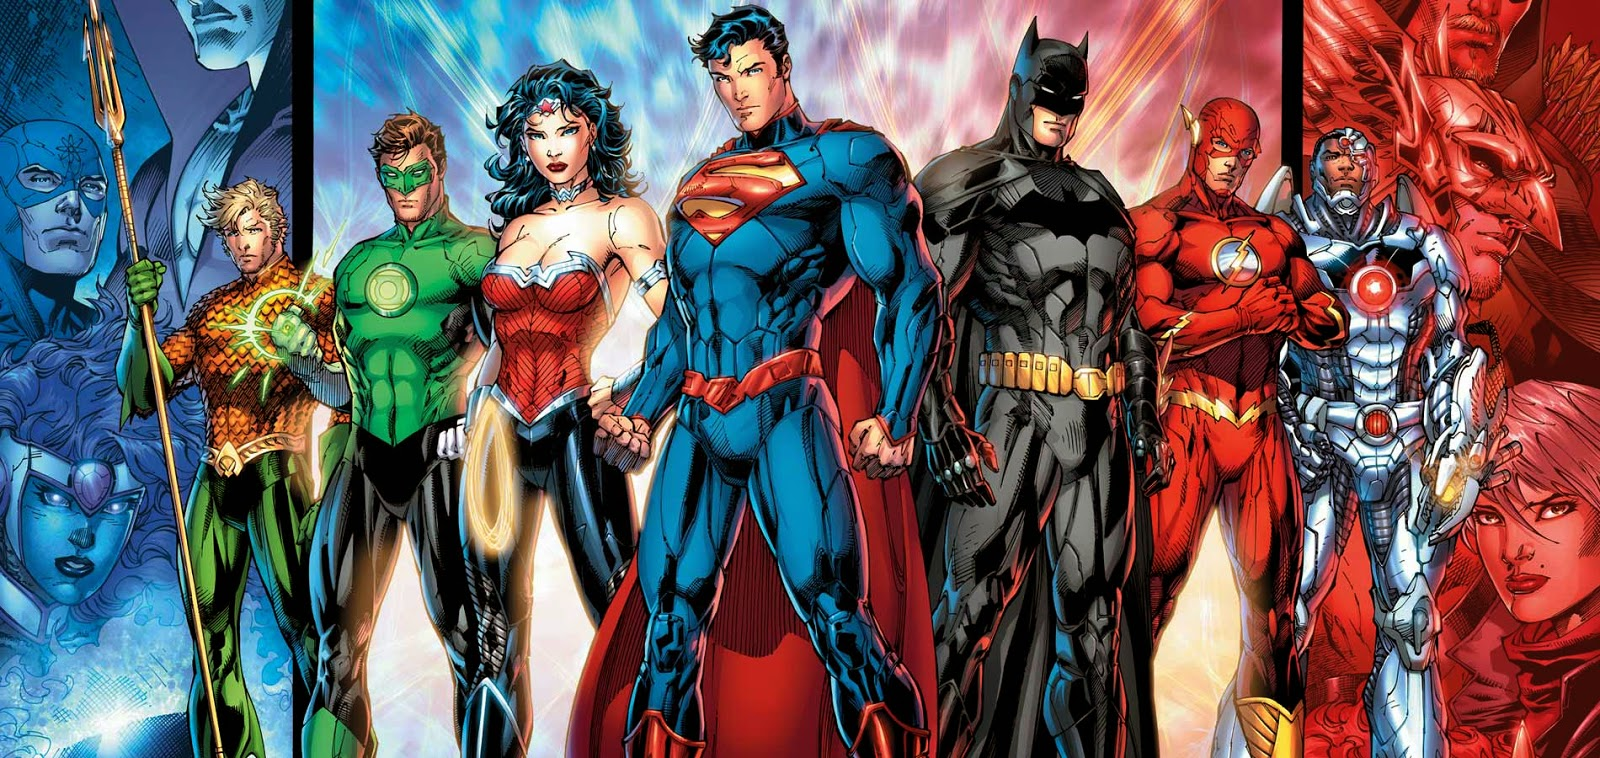 DC's Justice League lineup